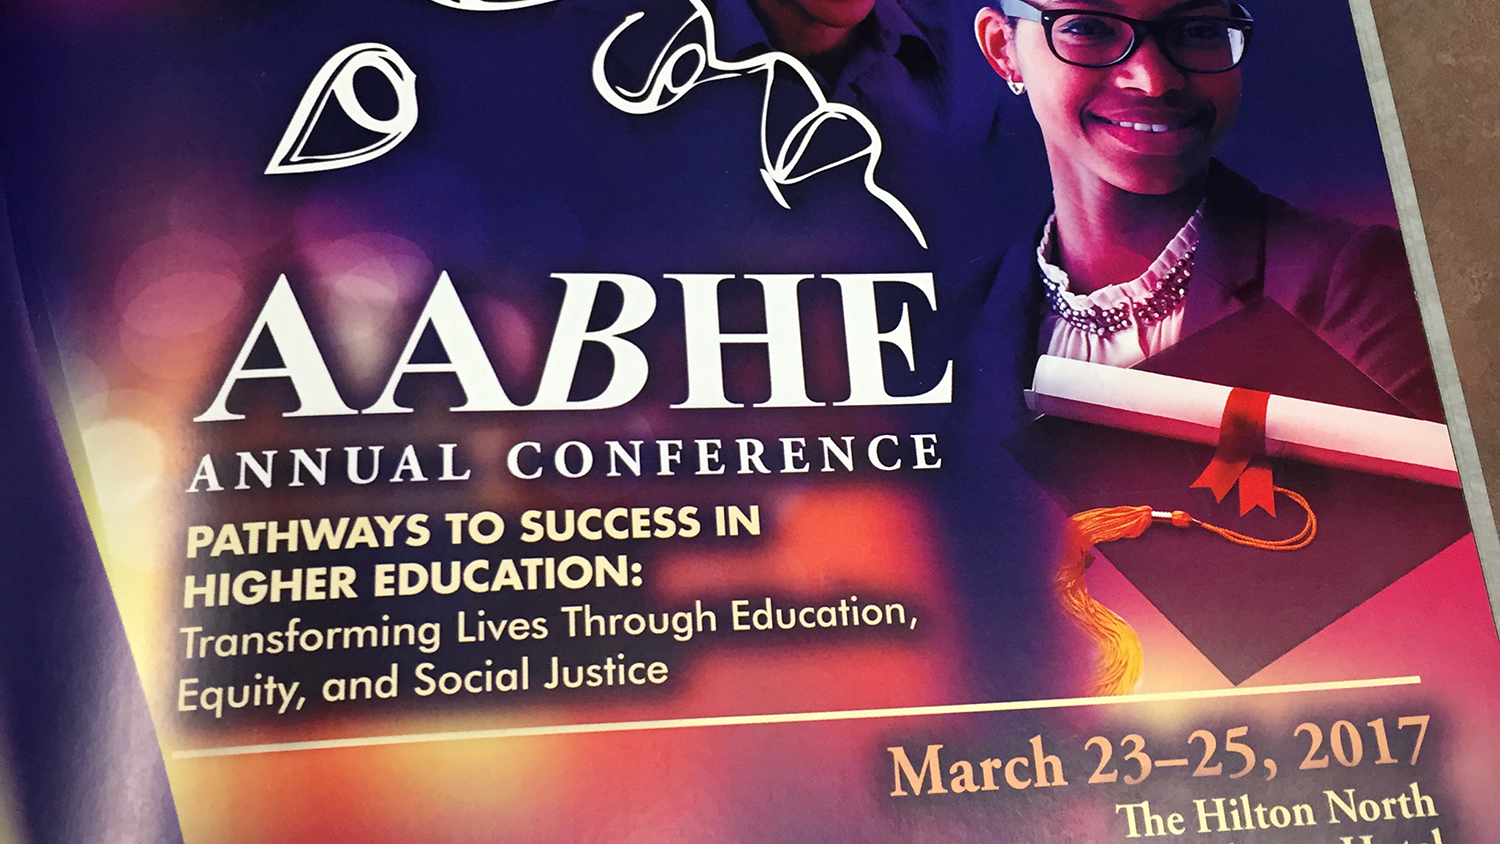 AABHE Conference 2017